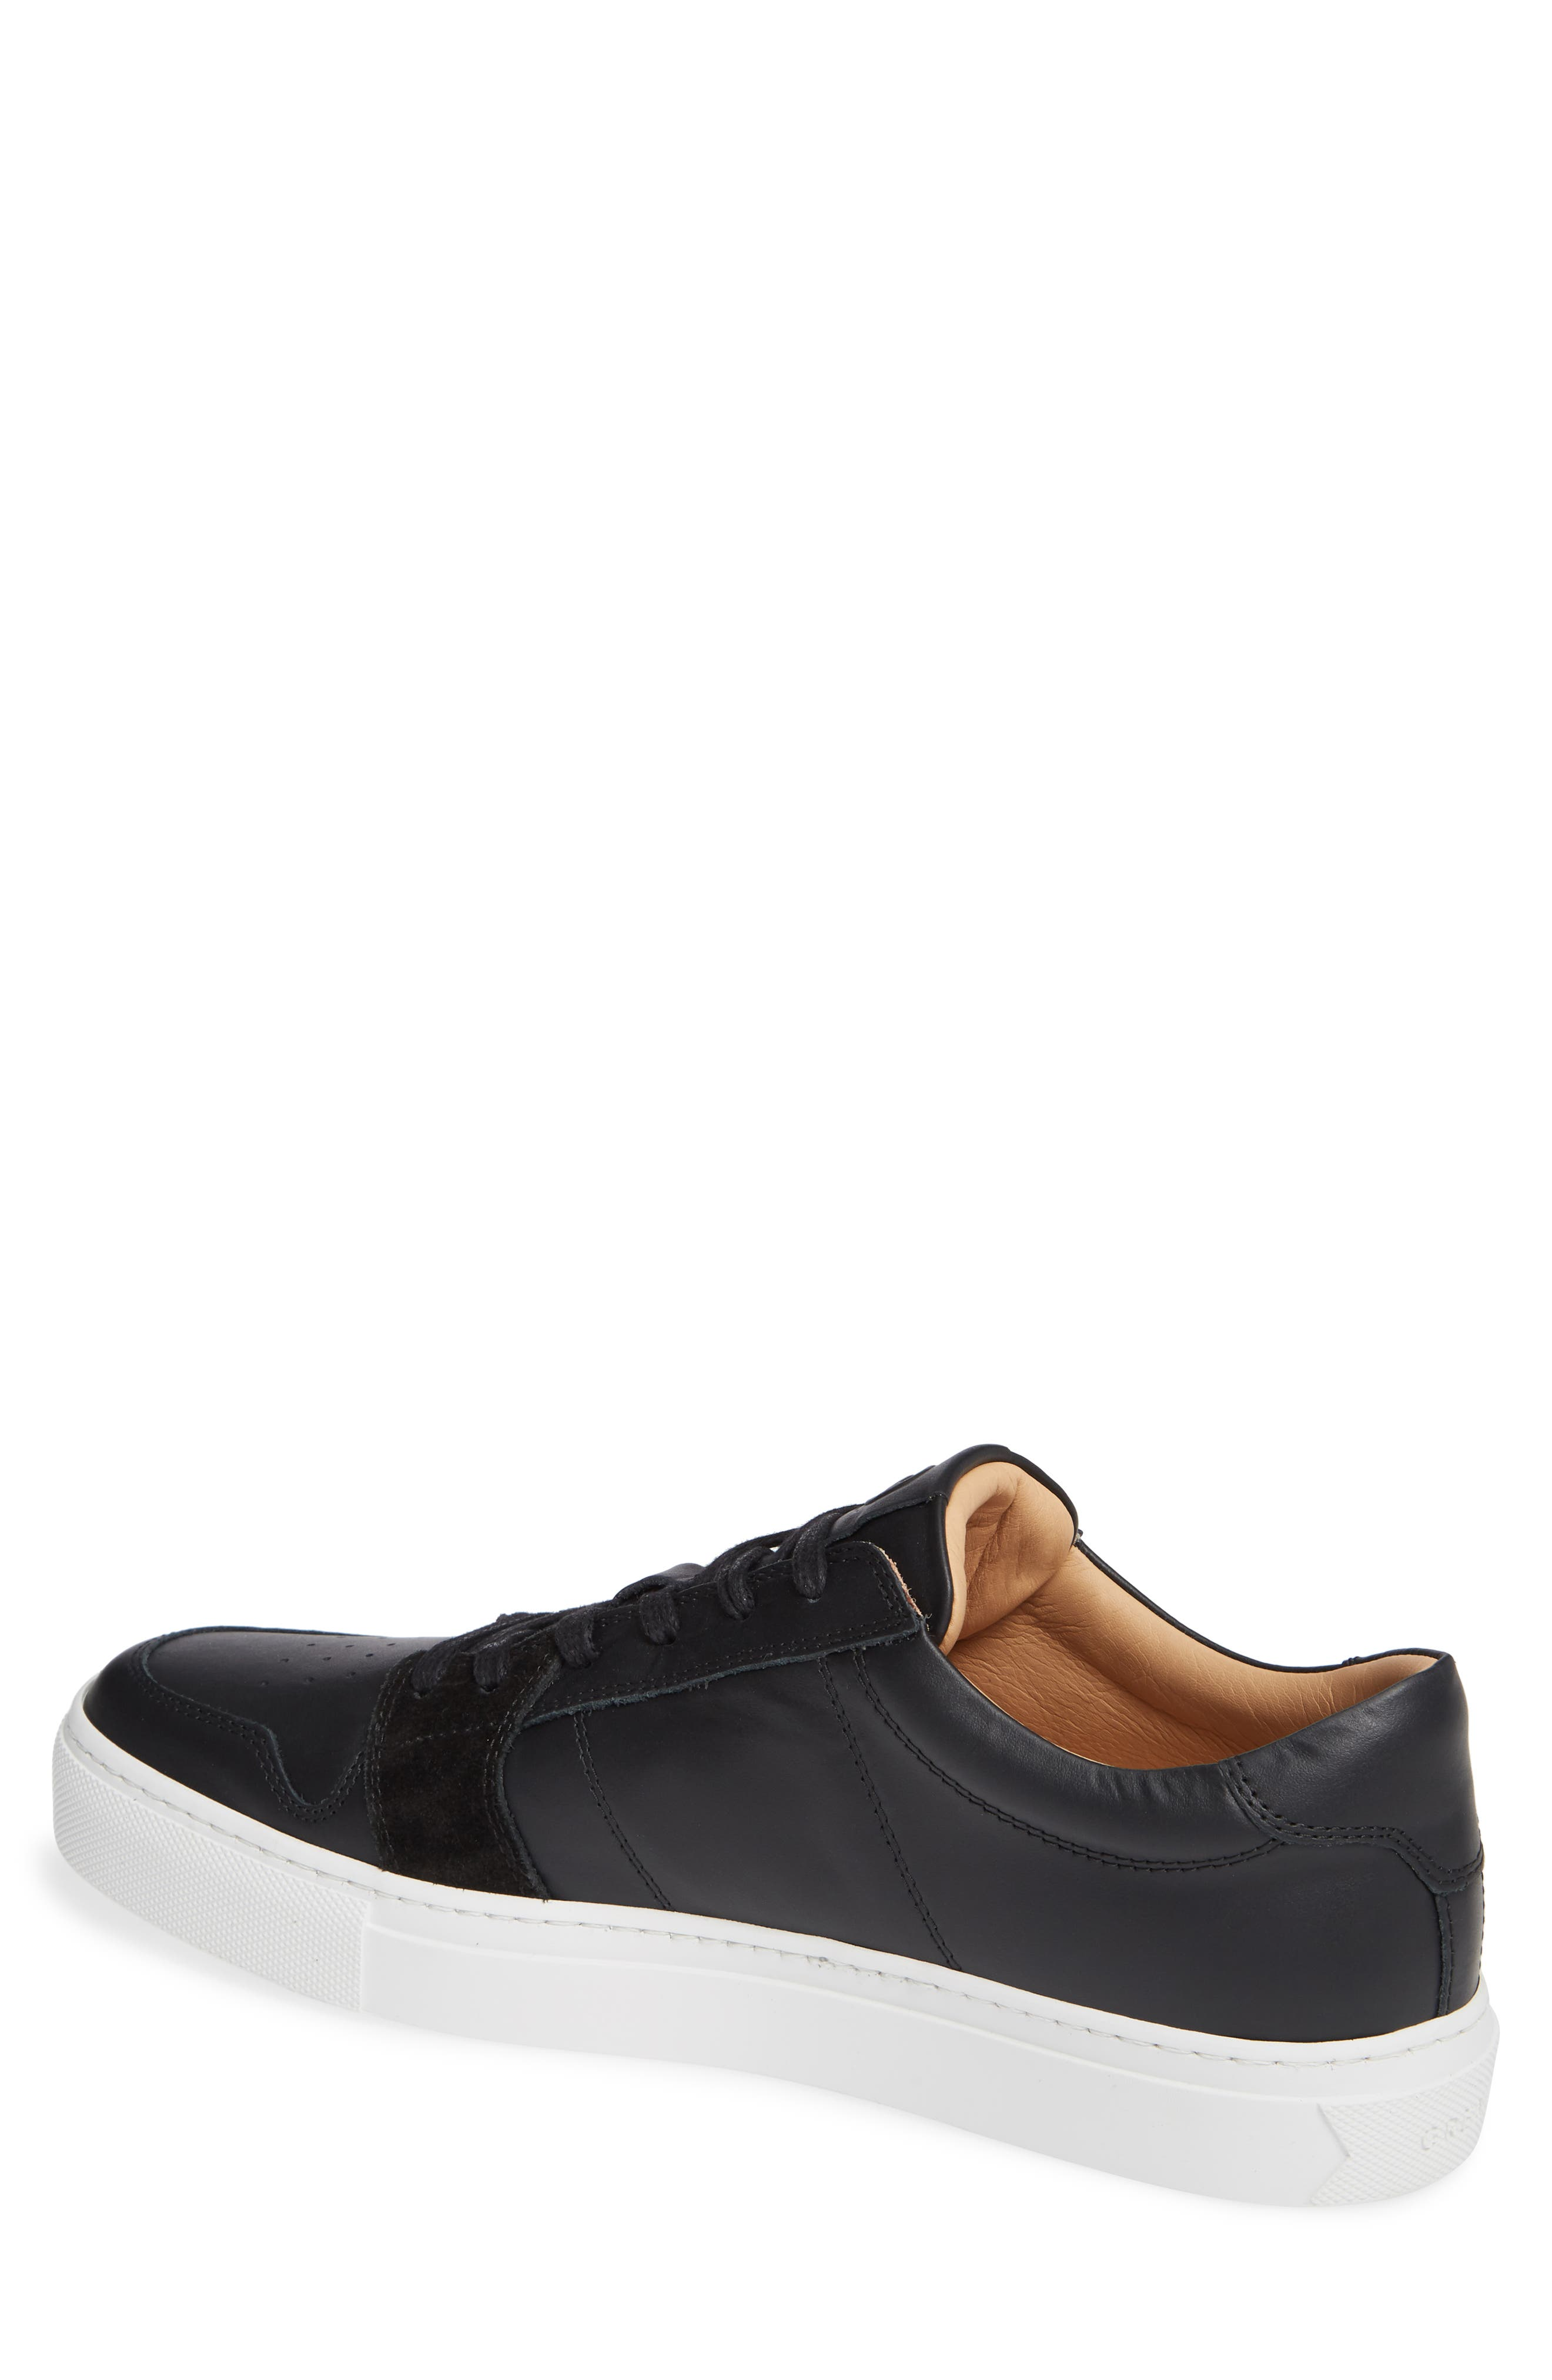 Nick Wooster x GREATS Court Low Top Sneaker,                             Alternate thumbnail 2, color,                             BLACK